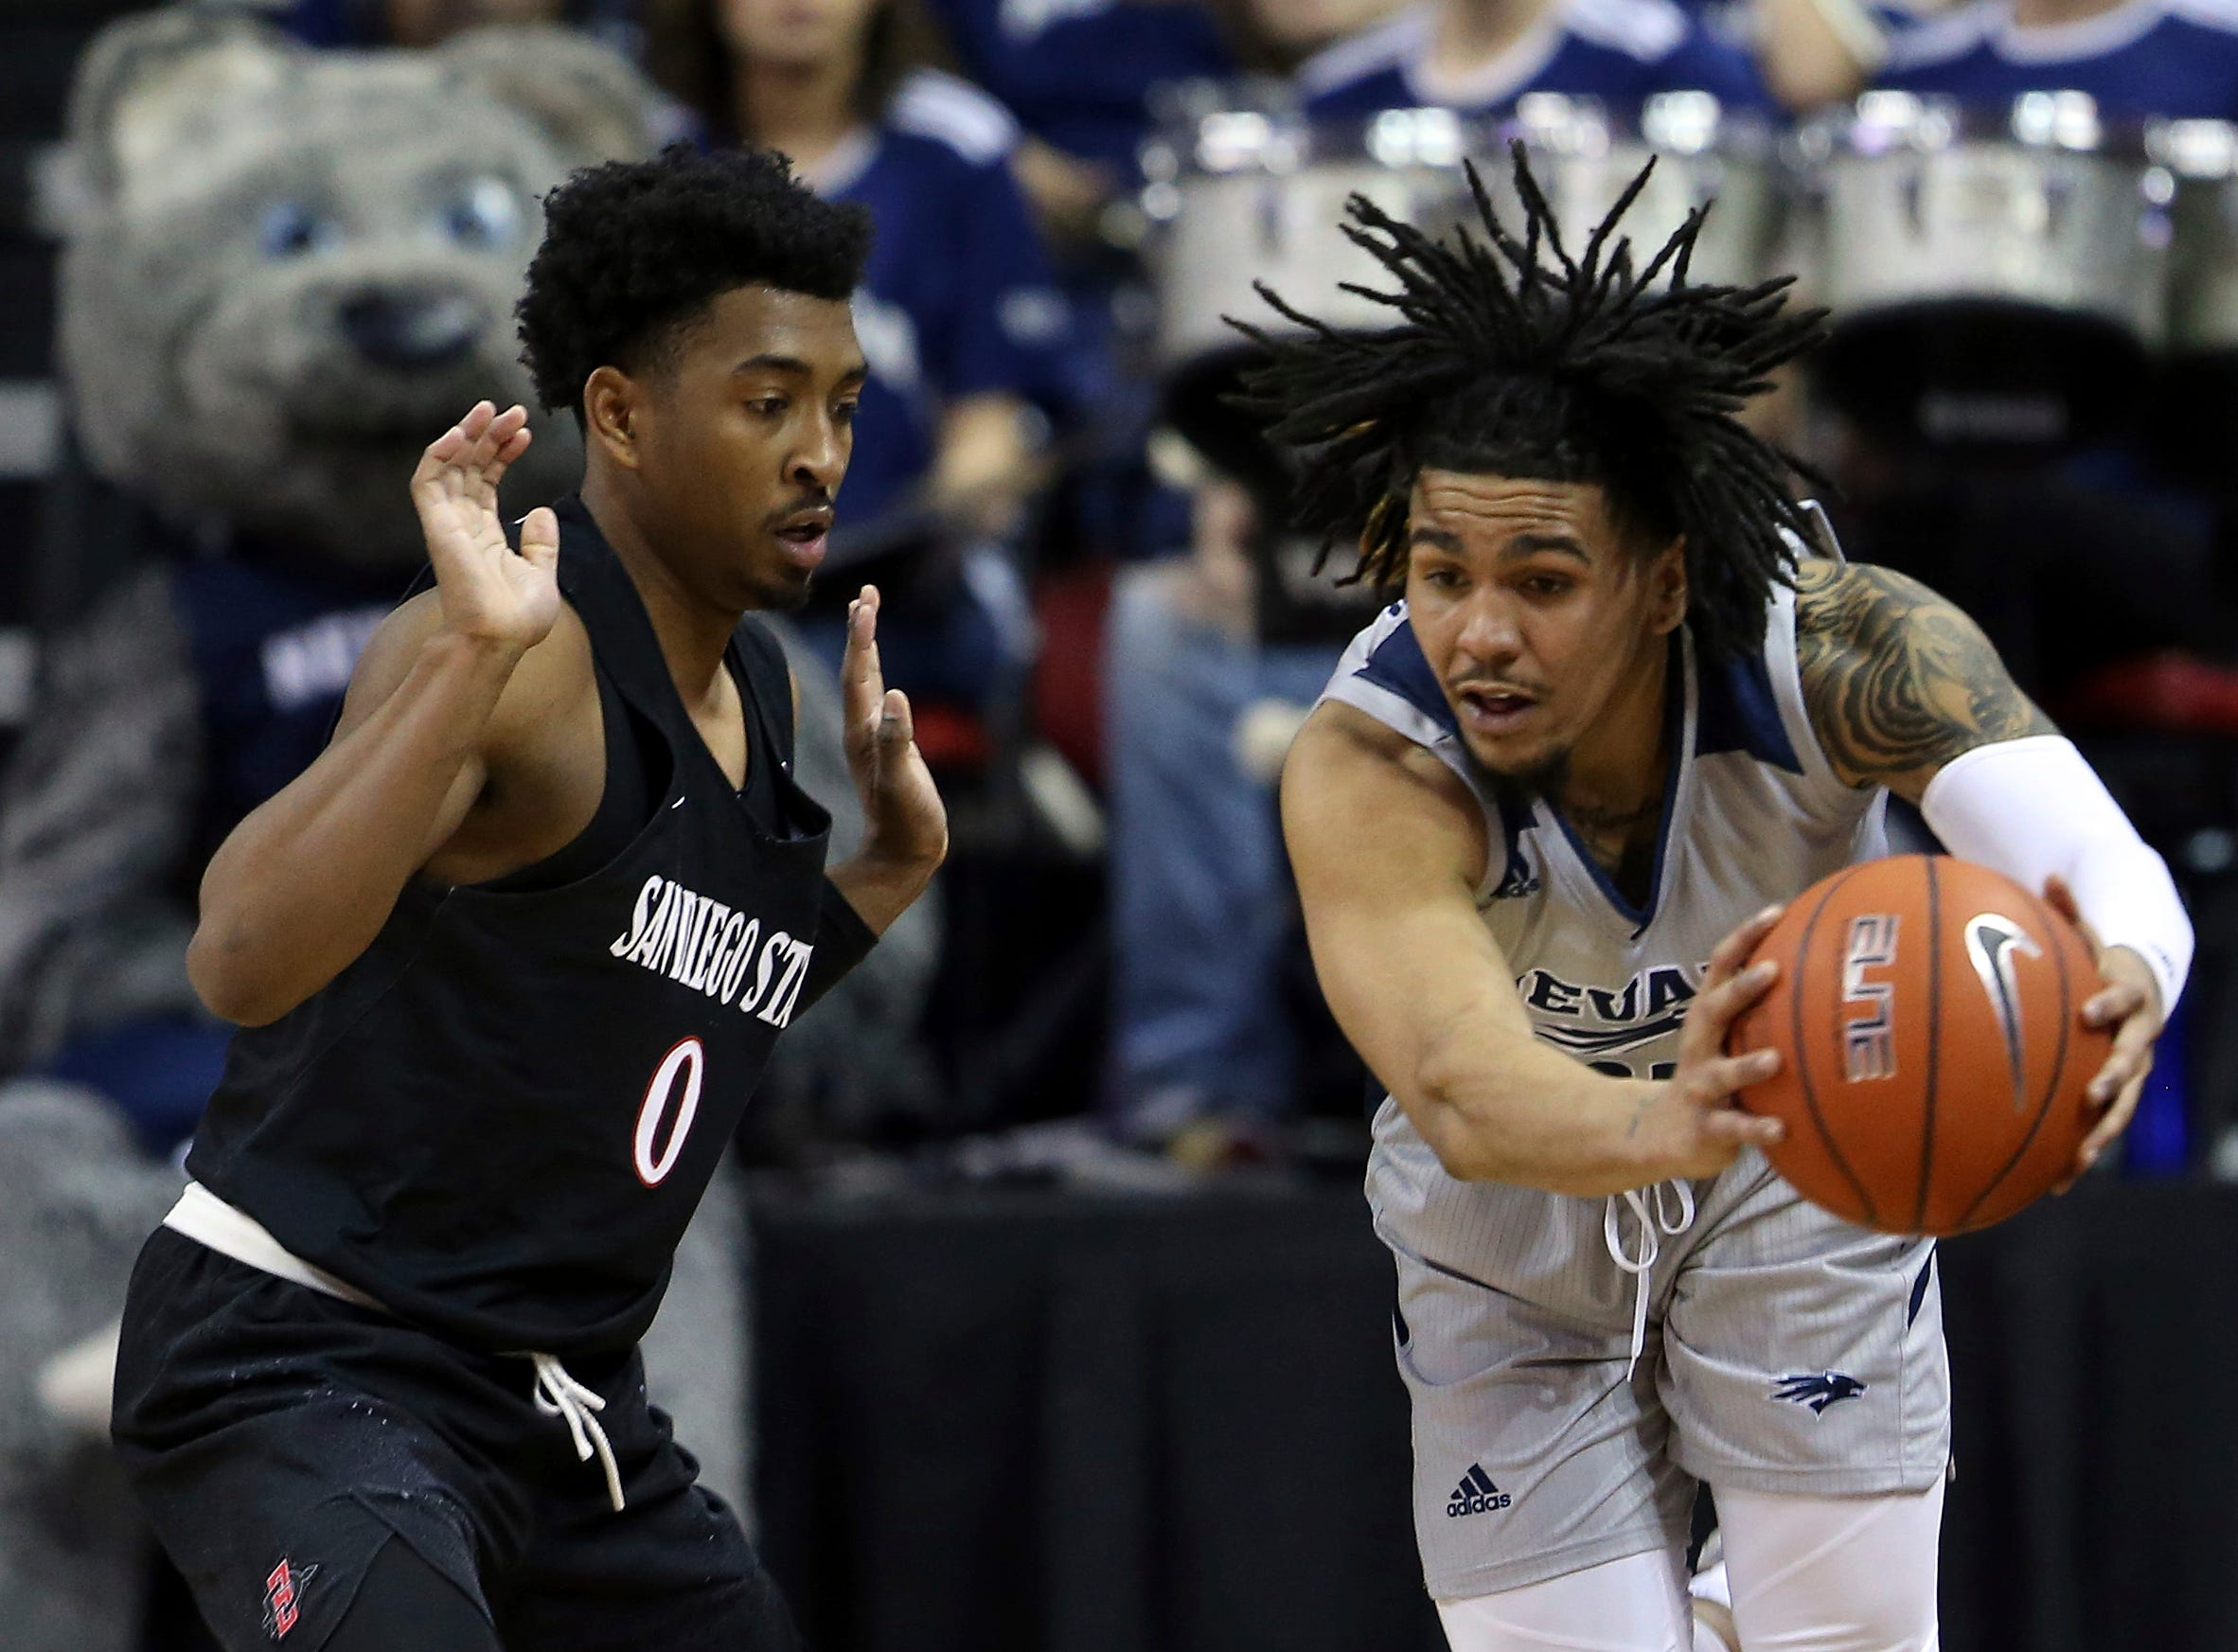 San Diego State's Devin Watson (0) defends as Nevada's Jazz Johnson (22) reaches to catch a pass during the second half of the team's NCAA college basketball game in the Mountain West Conference men's tournament Friday, March 15, 2019, in Las Vegas. (AP Photo/Isaac Brekken)